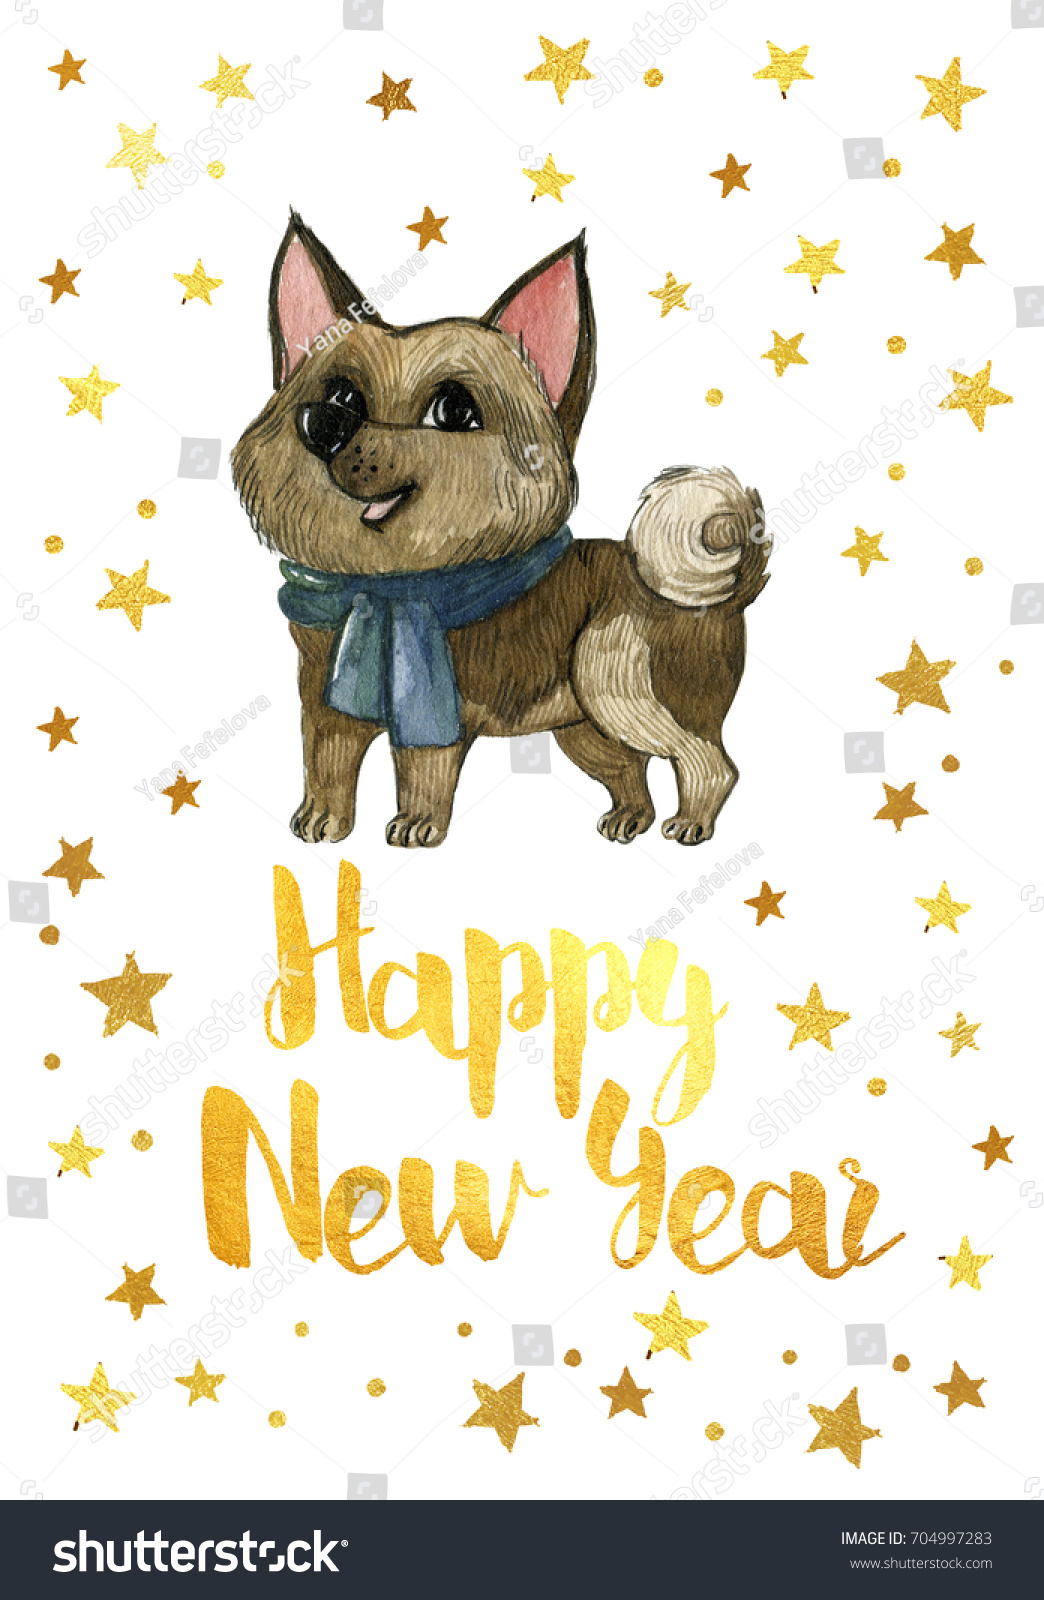 the chinese new year 2018 happy new year 2018 card with golden stars and